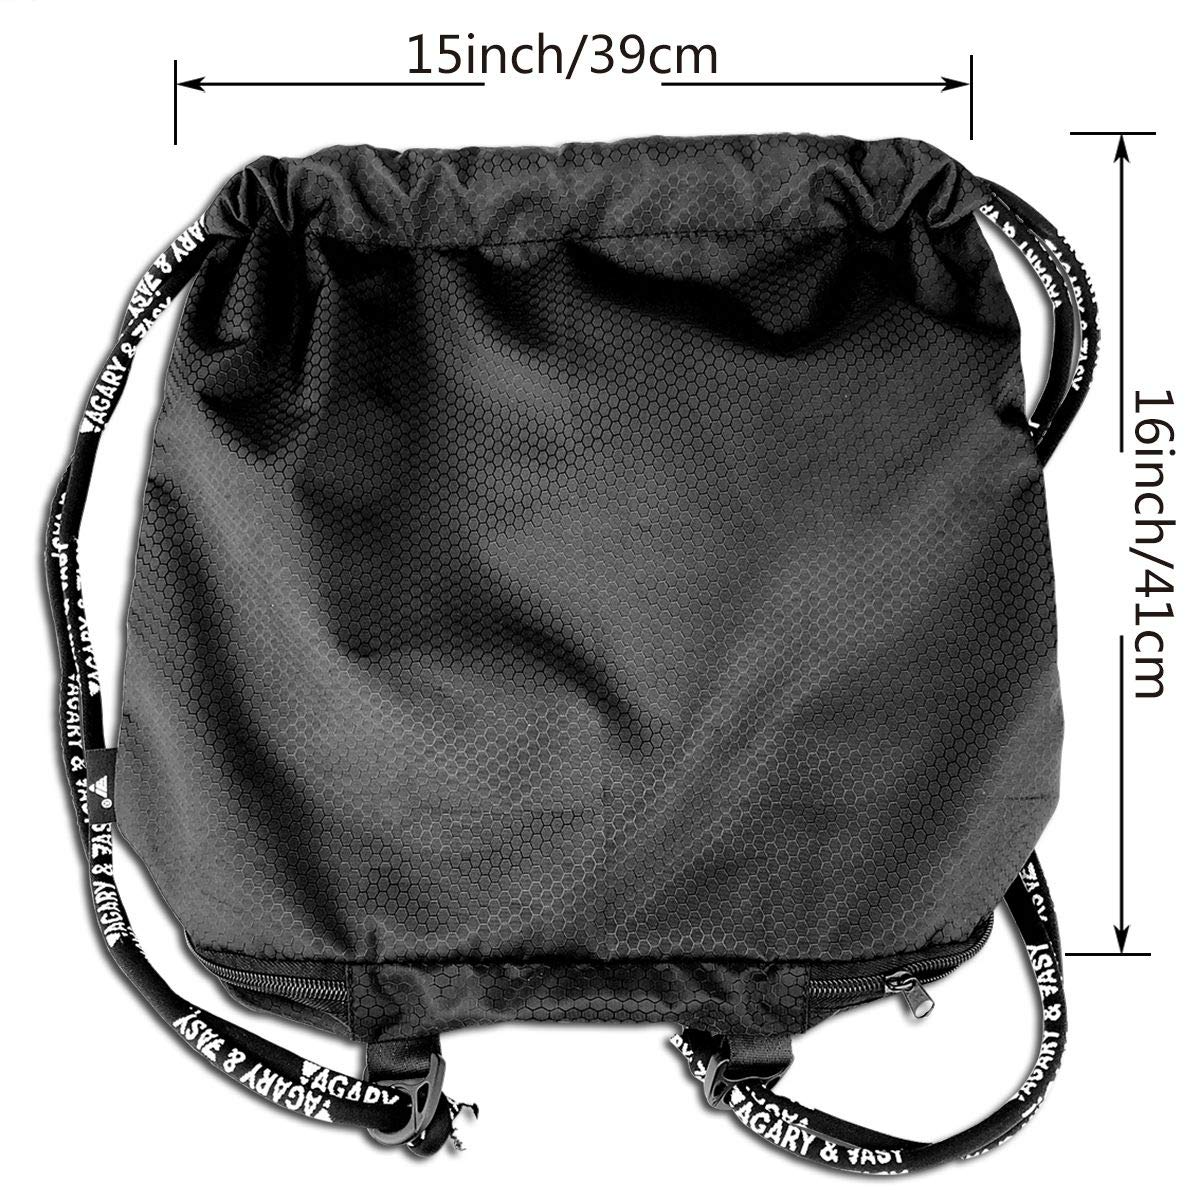 HUOPR5Q Sport Drawstring Backpack Sport Gym Sack Shoulder Bulk Bag Dance Bag for School Travel